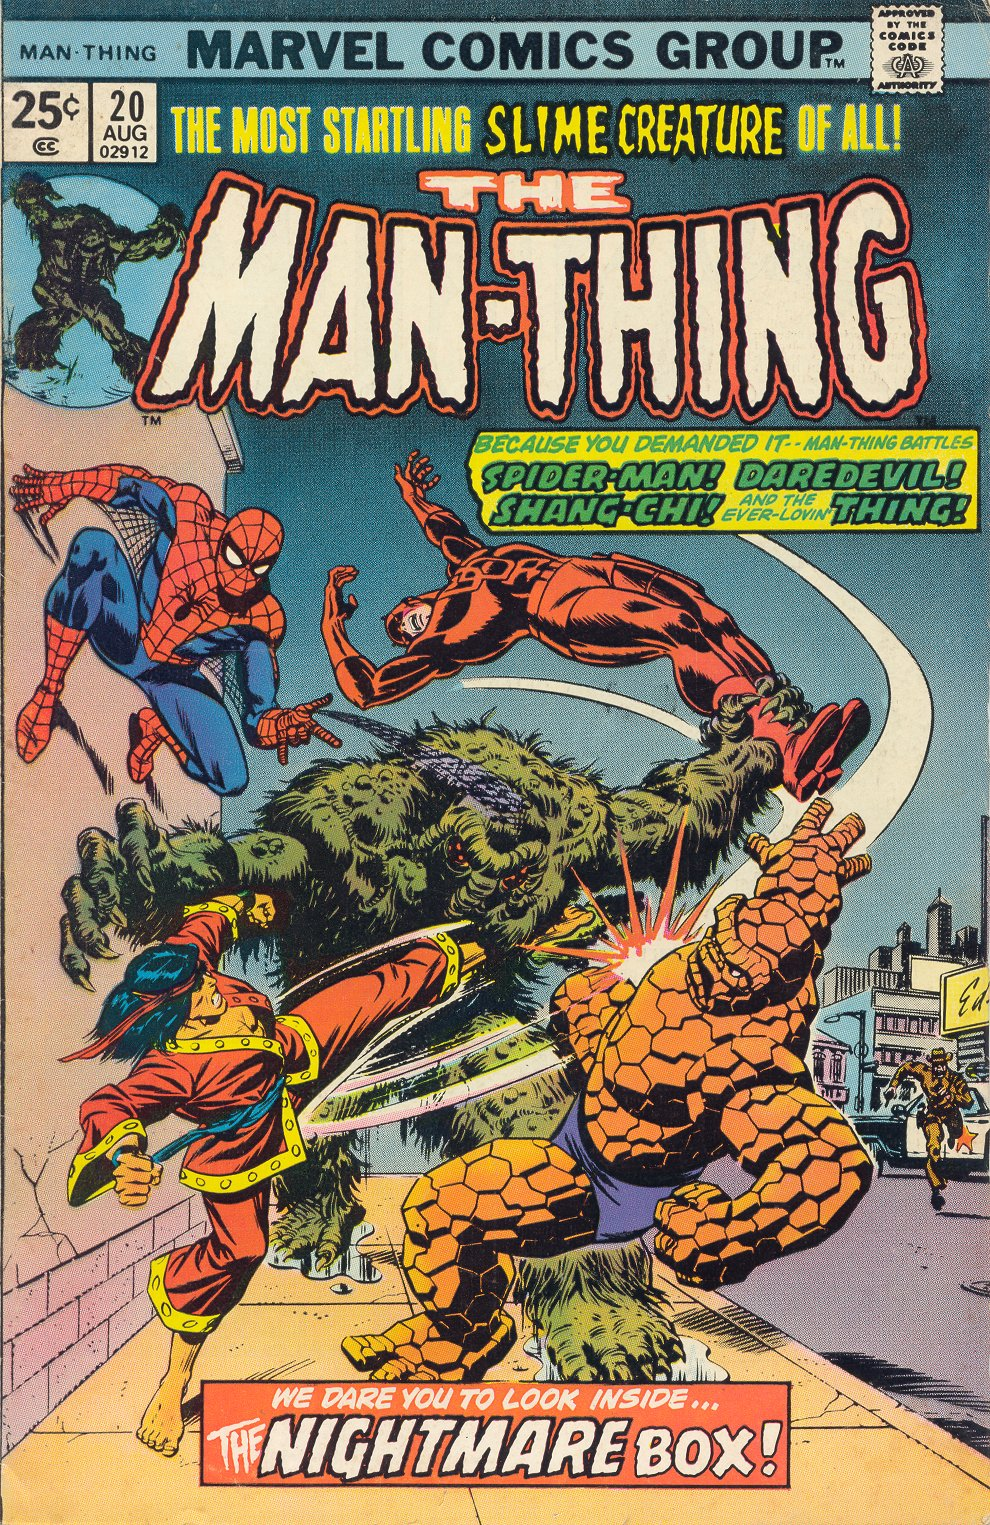 Man-Thing (1974) issue 20 - Page 1